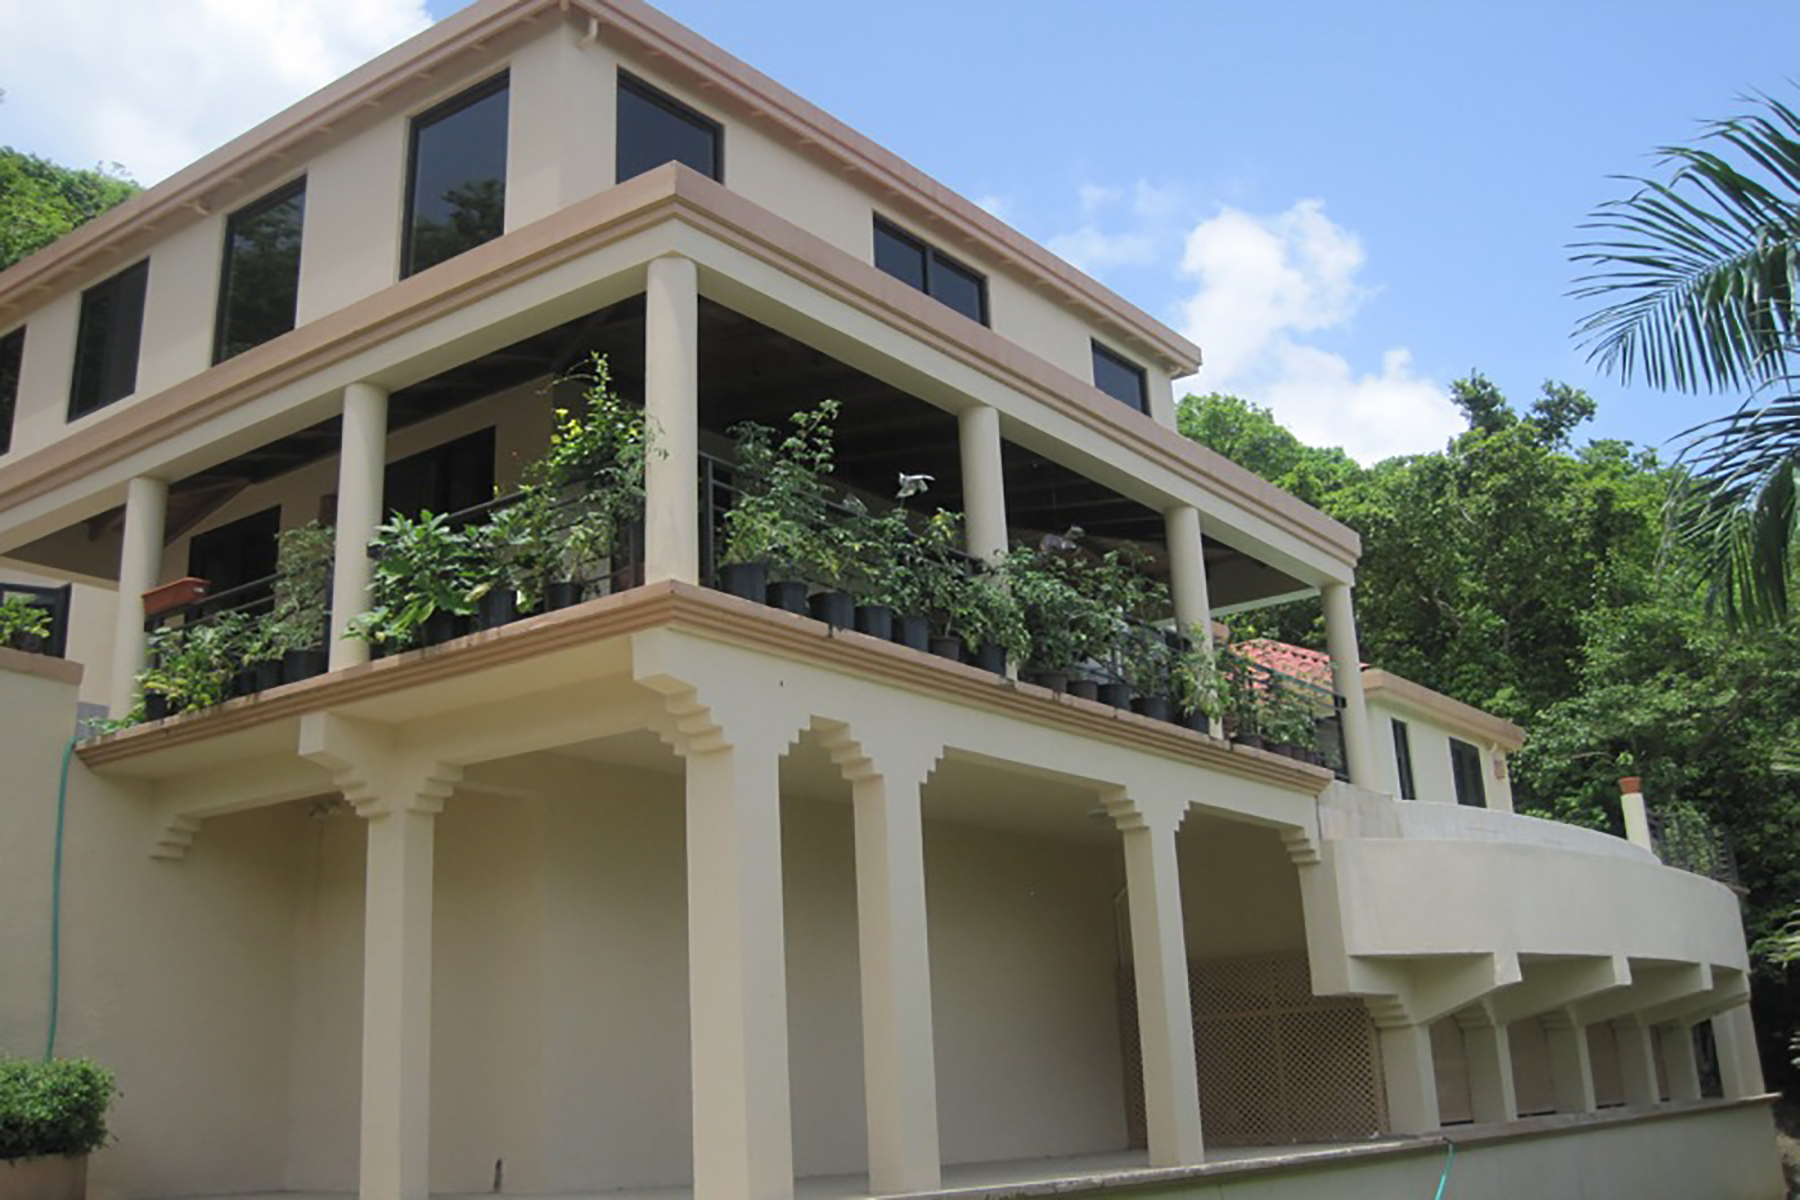 Single Family Home for Sale at Belmont House Other Tortola, Tortola British Virgin Islands